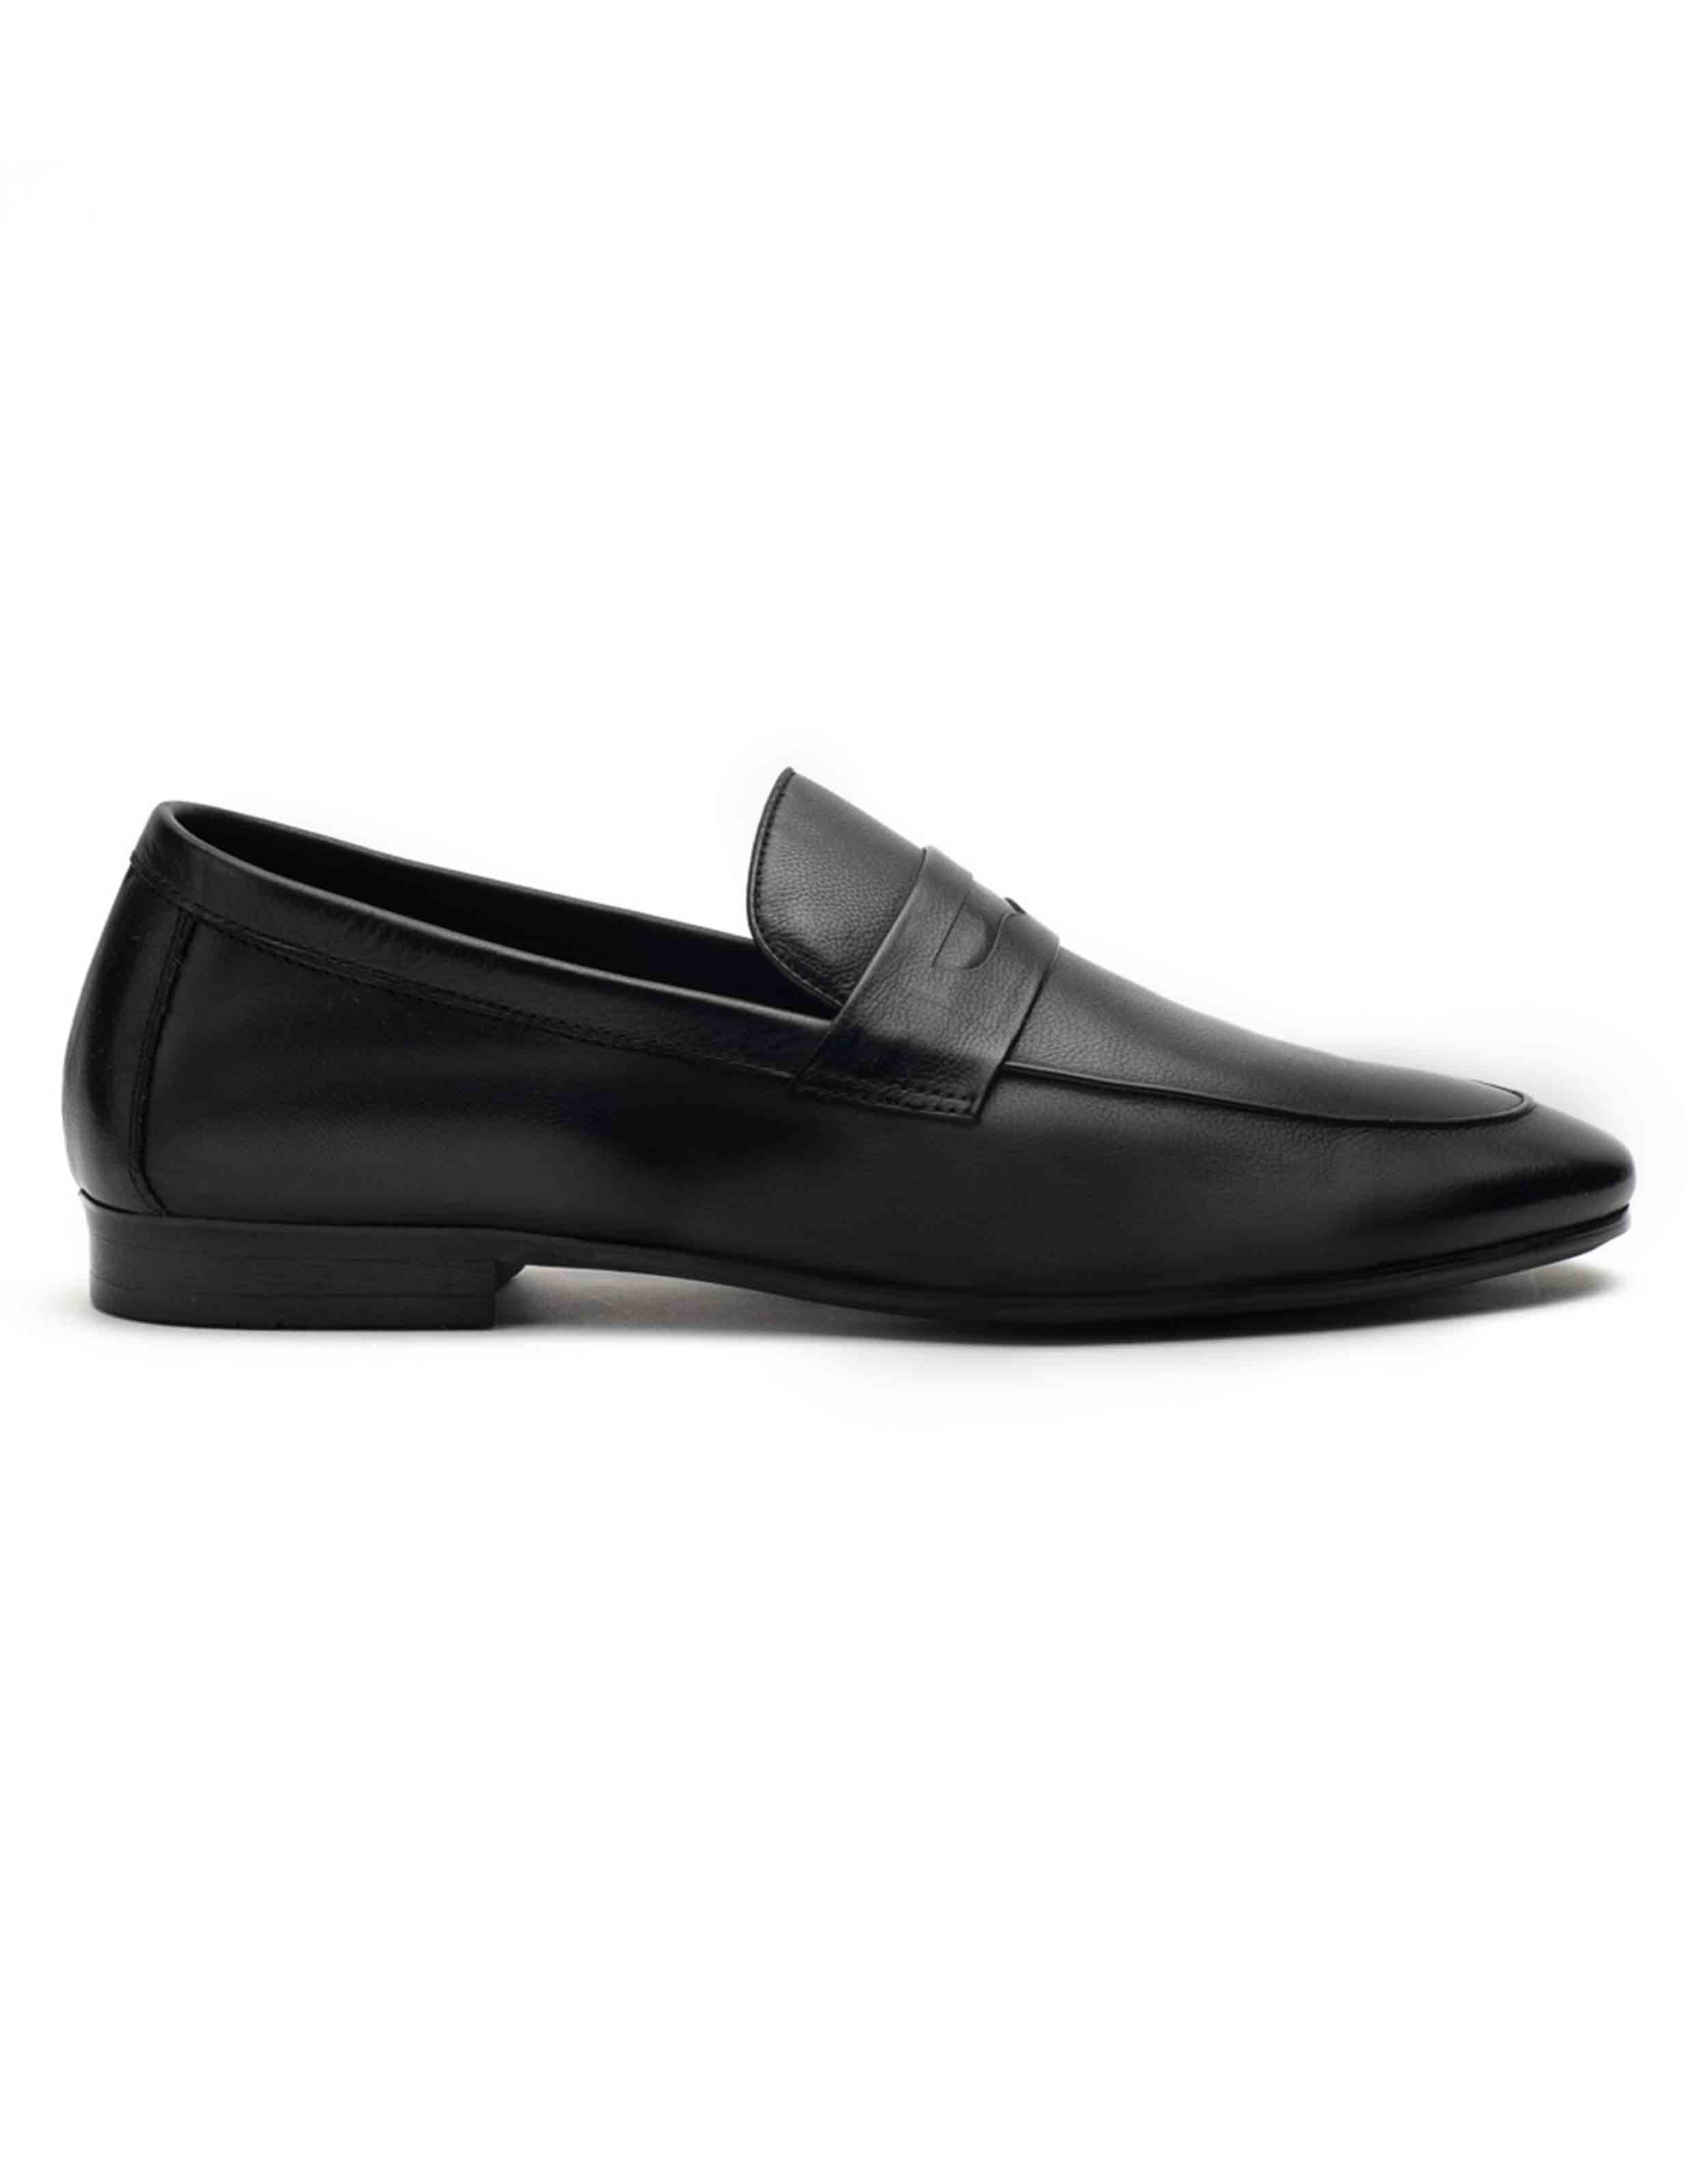 Heel _ Buckle London-HBDARM082-Ascetic Charcoal Loafers-Black-1